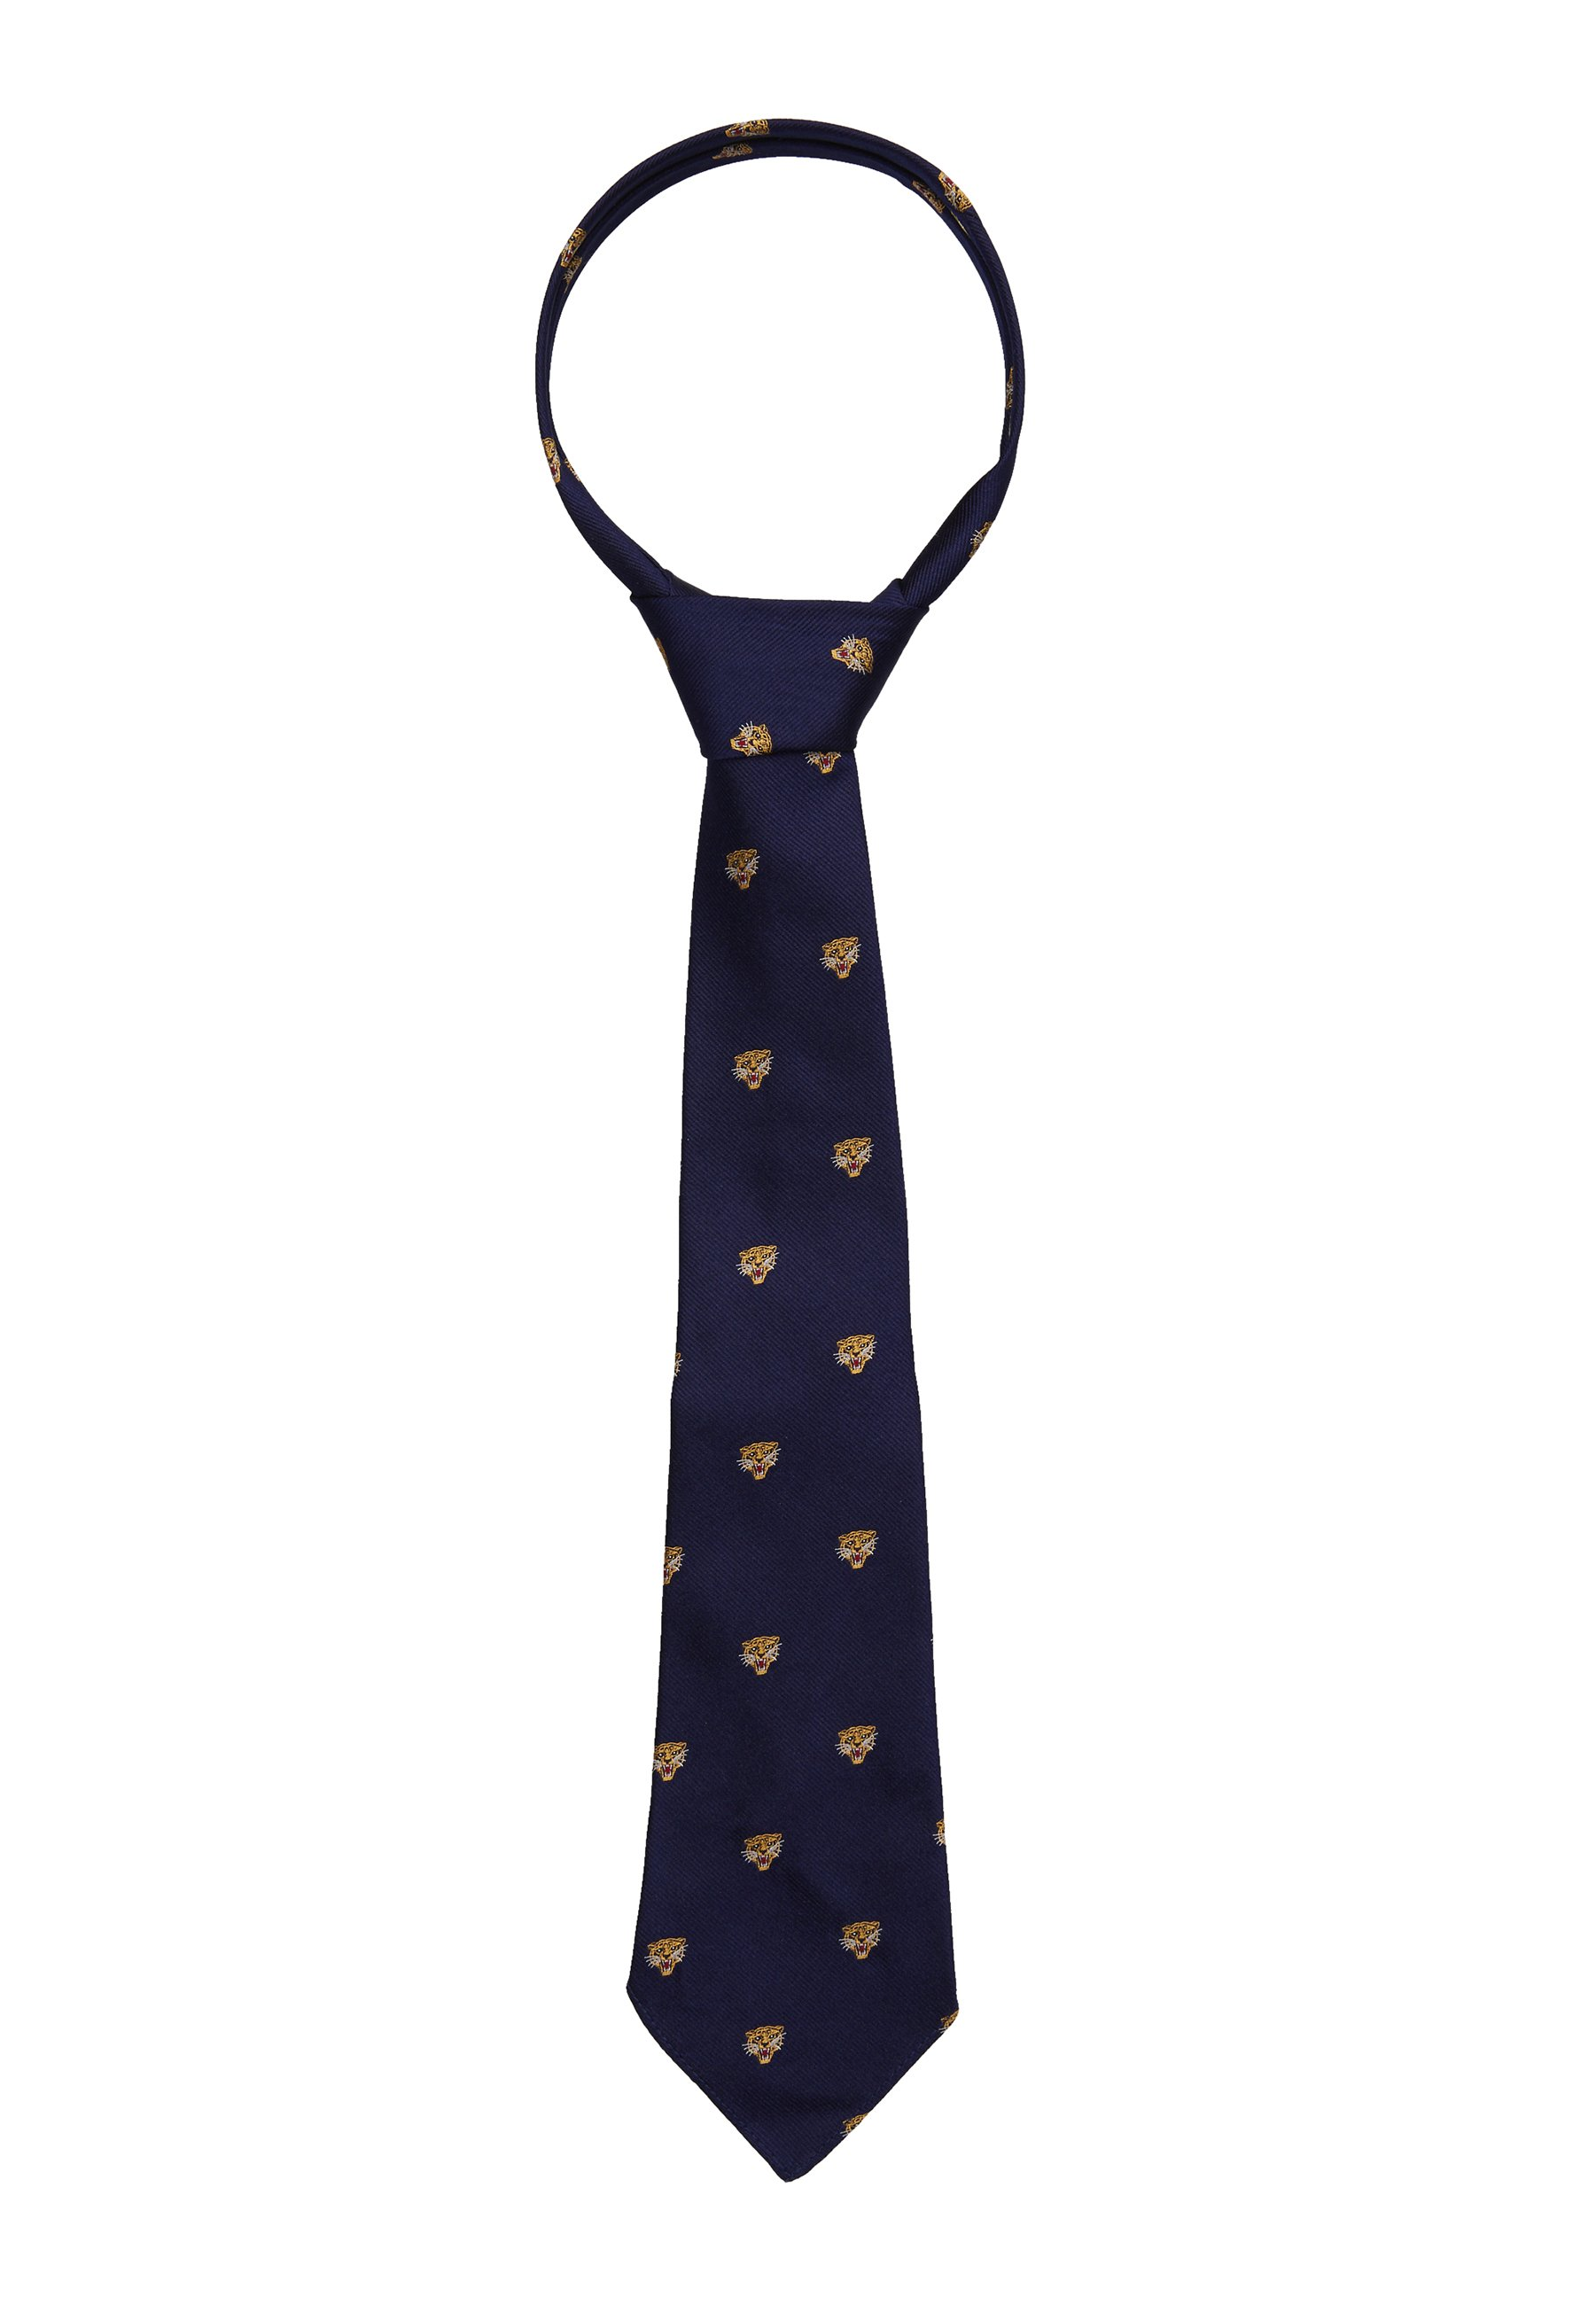 Polo Ralph Lauren LION CLUB VINTAGE TIE - Krawat - navy